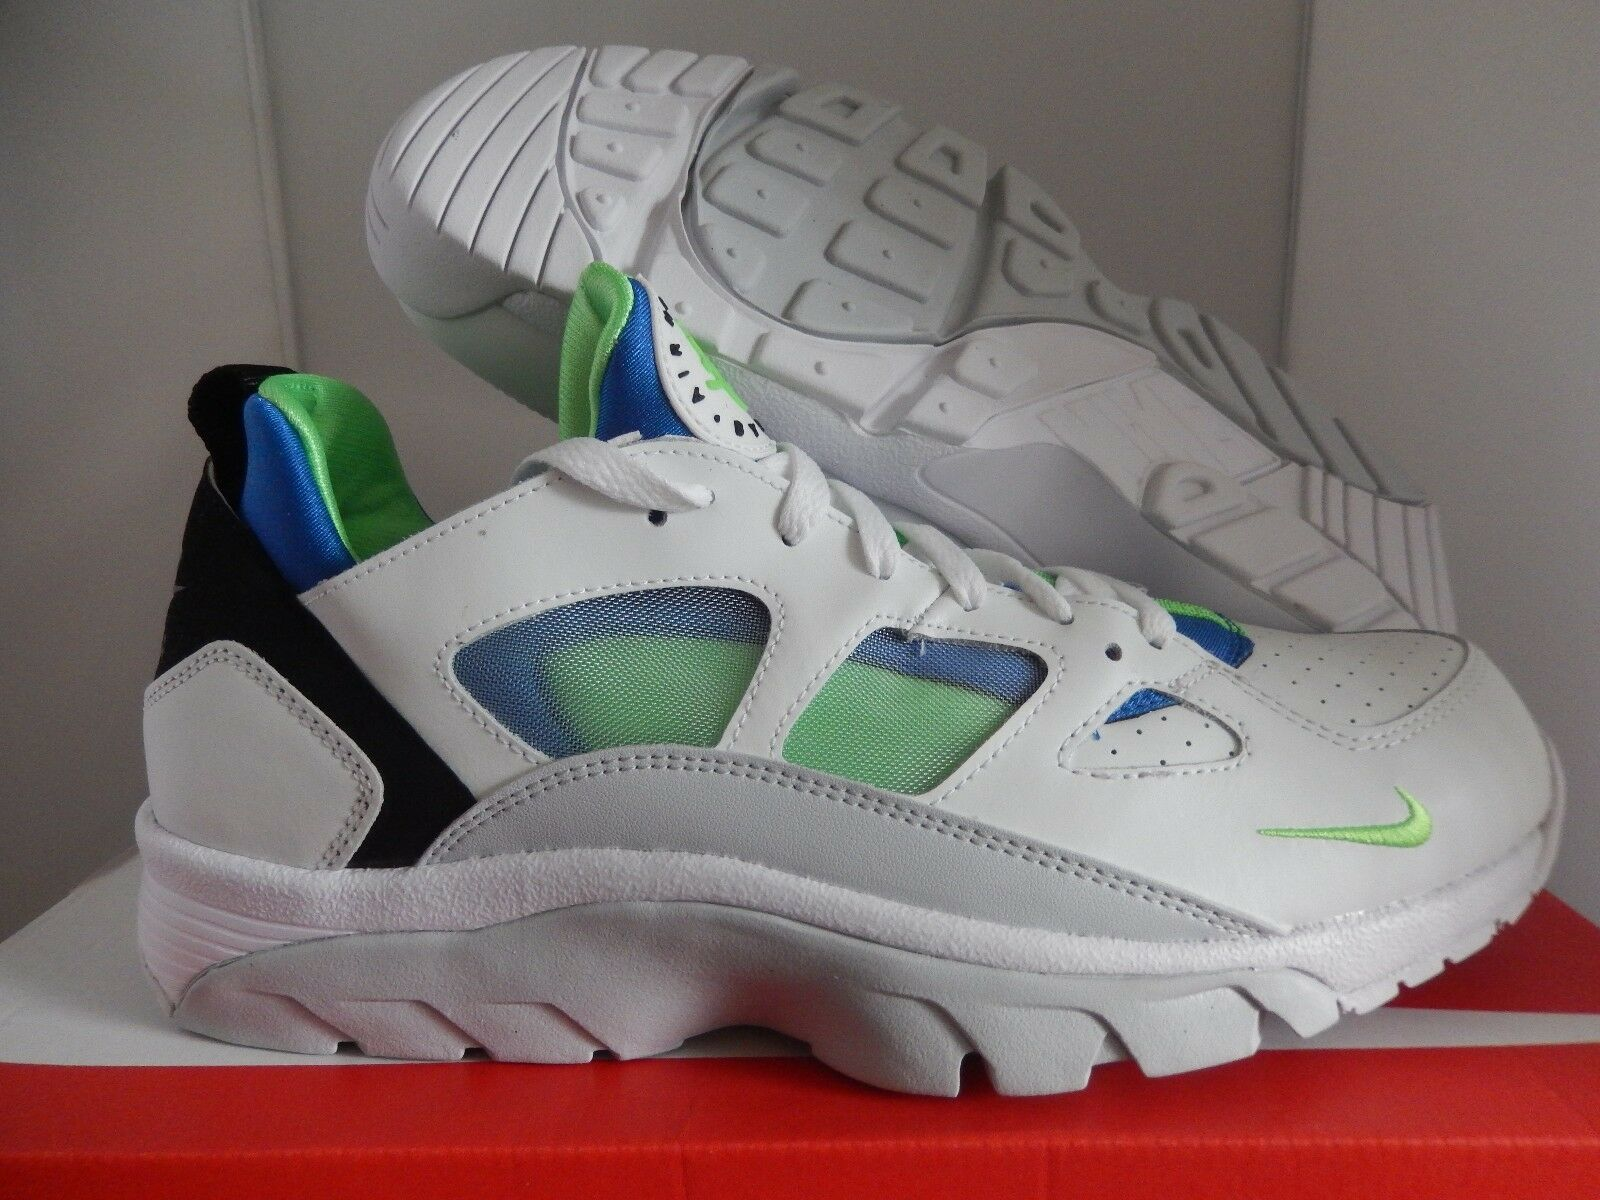 NIKE AIR TRAINER HUARACHE faible blanc-SCREAM GREEN-Bleu SZ 10.5 [749447-101]